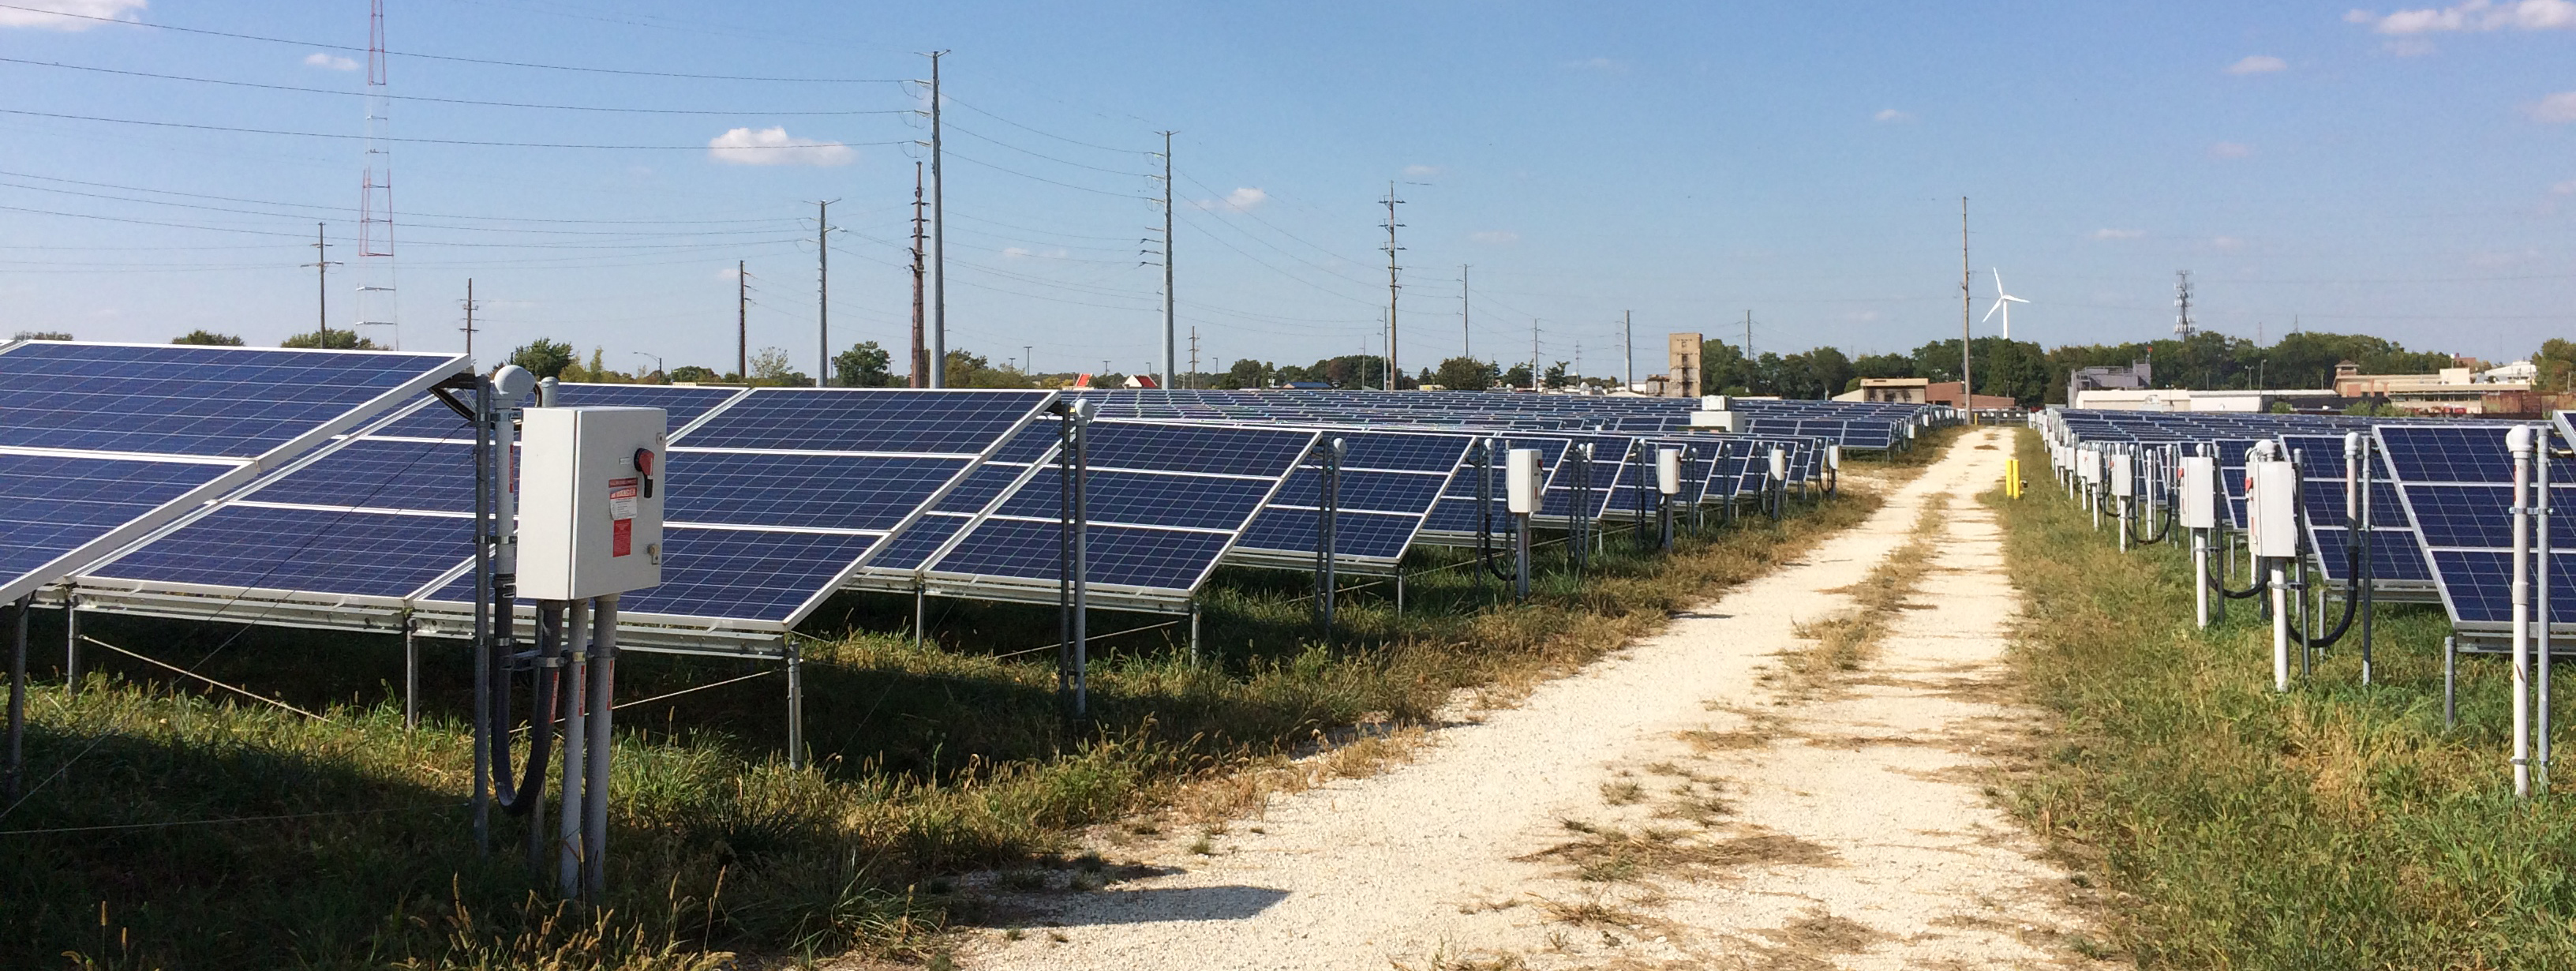 solar farm at the University of Illinois